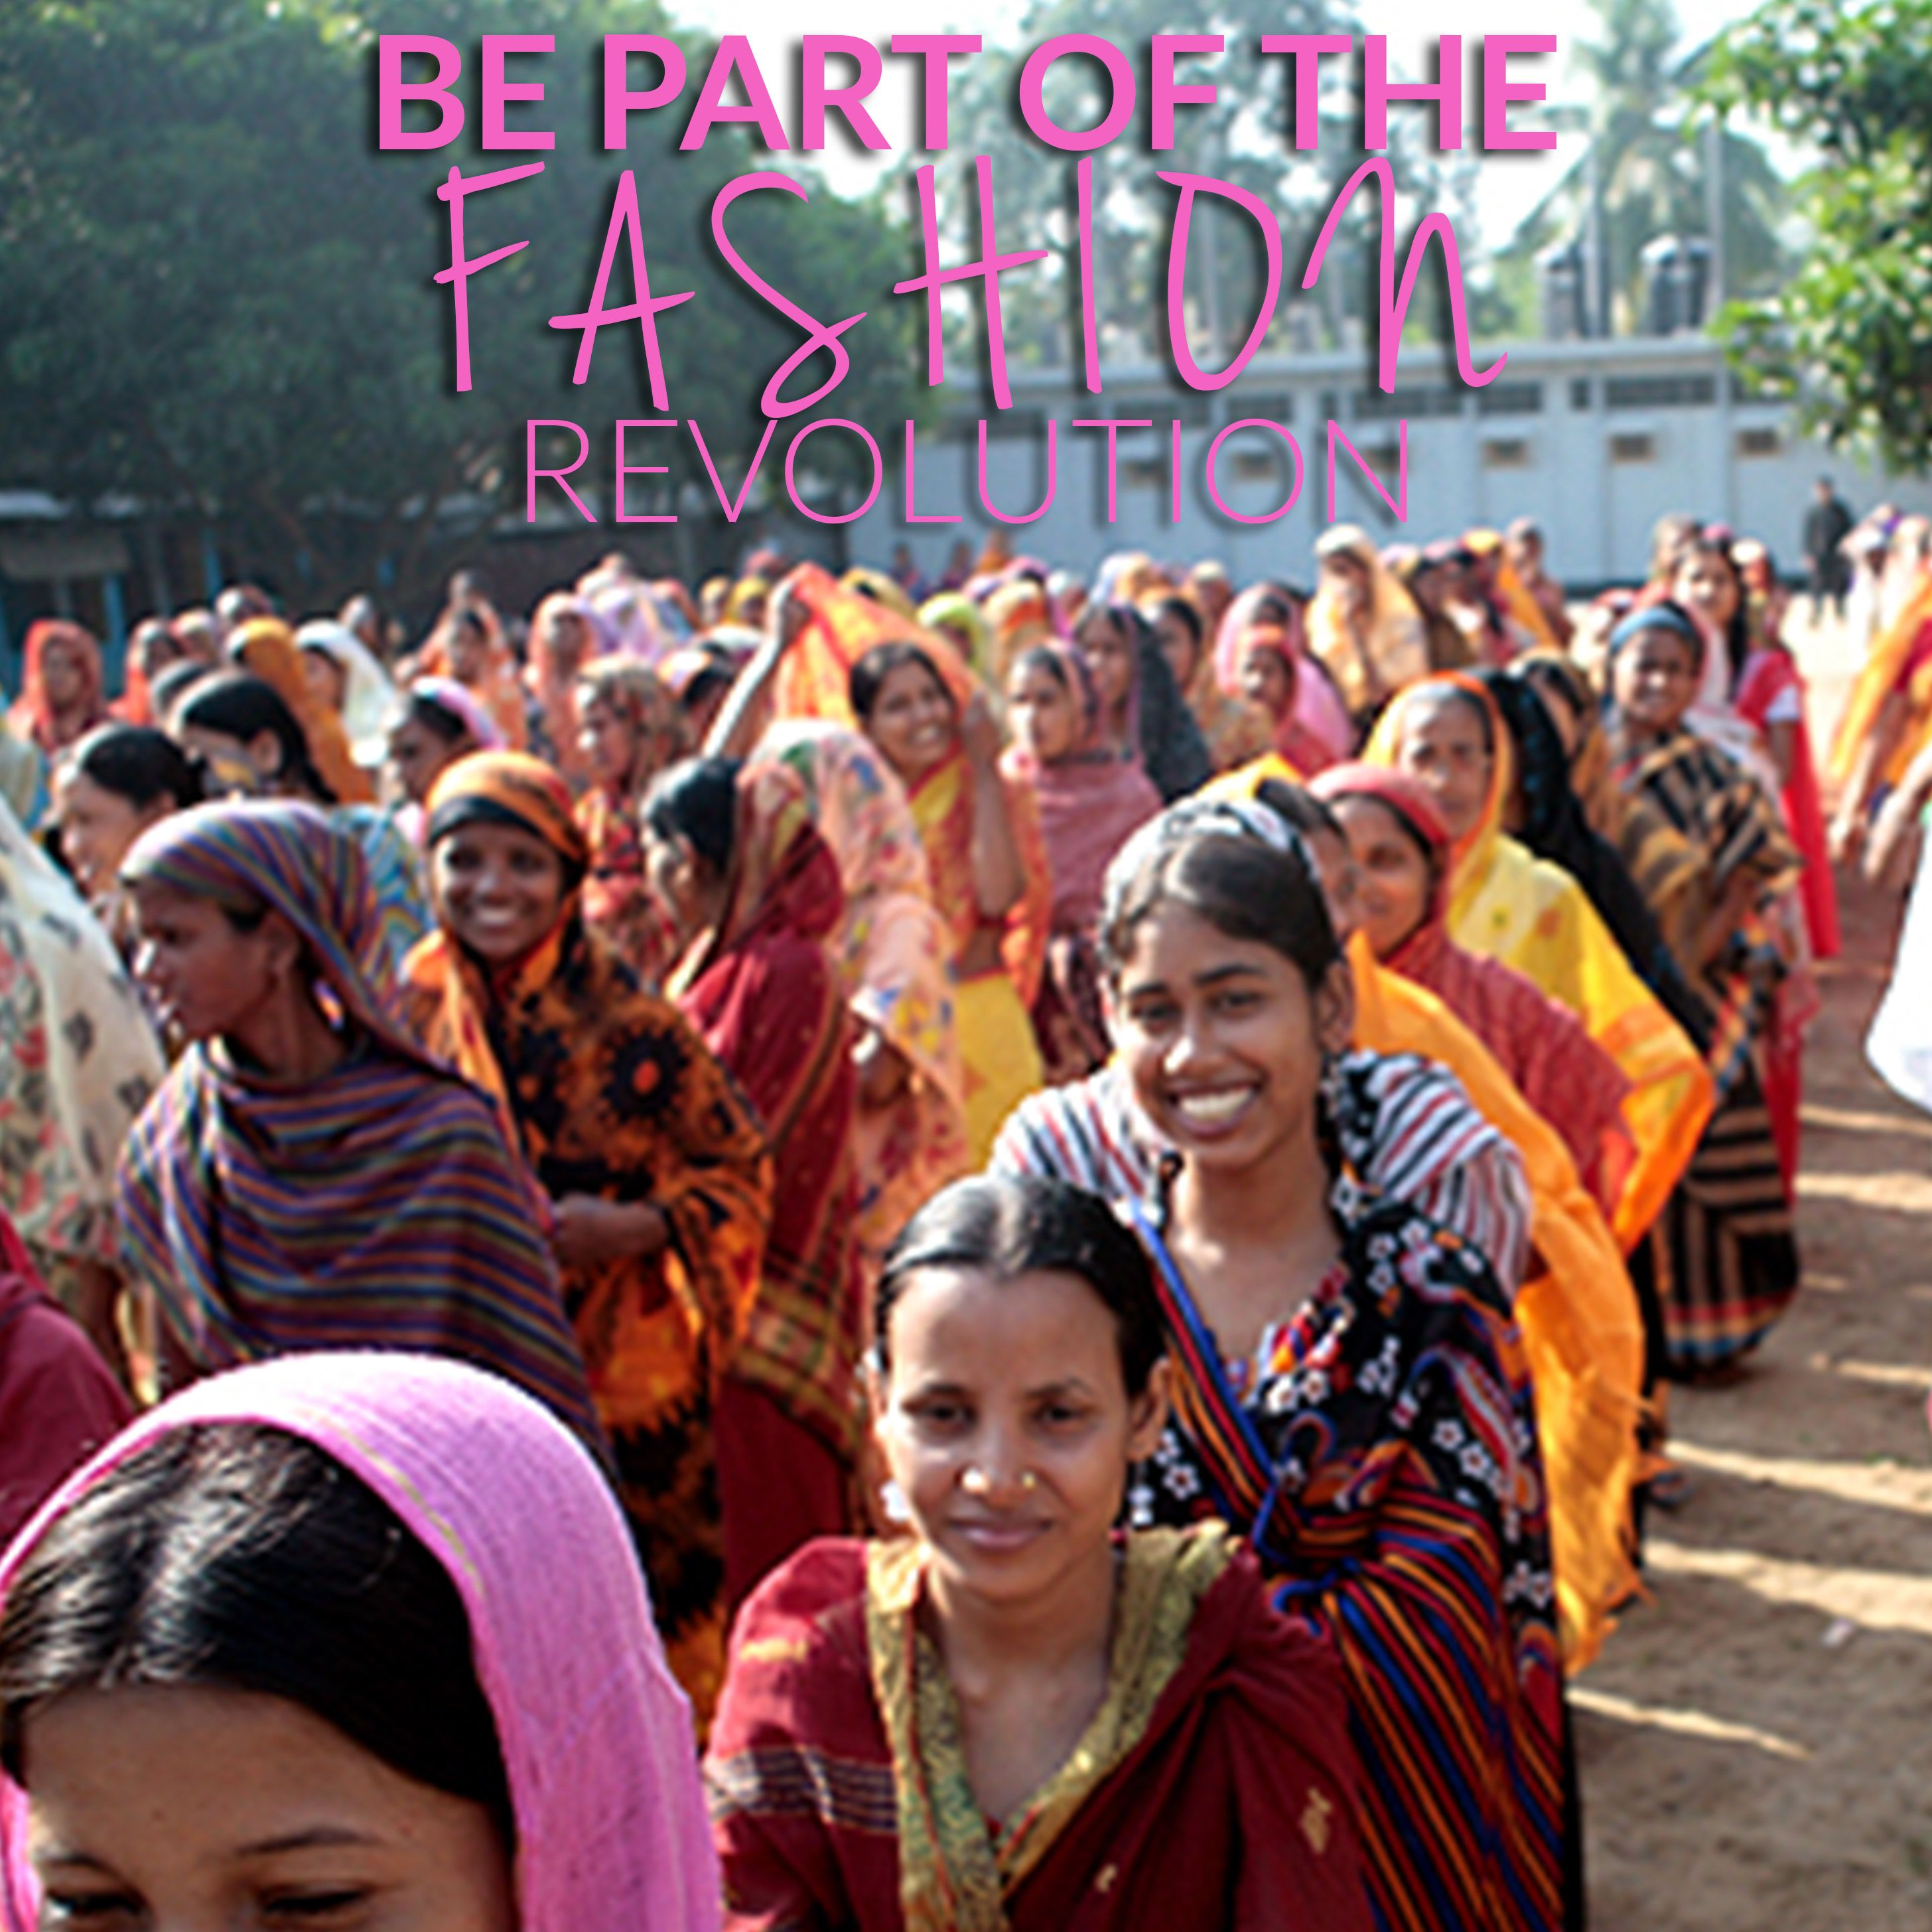 Be part of the fashion revolution! #fashiontakesaction